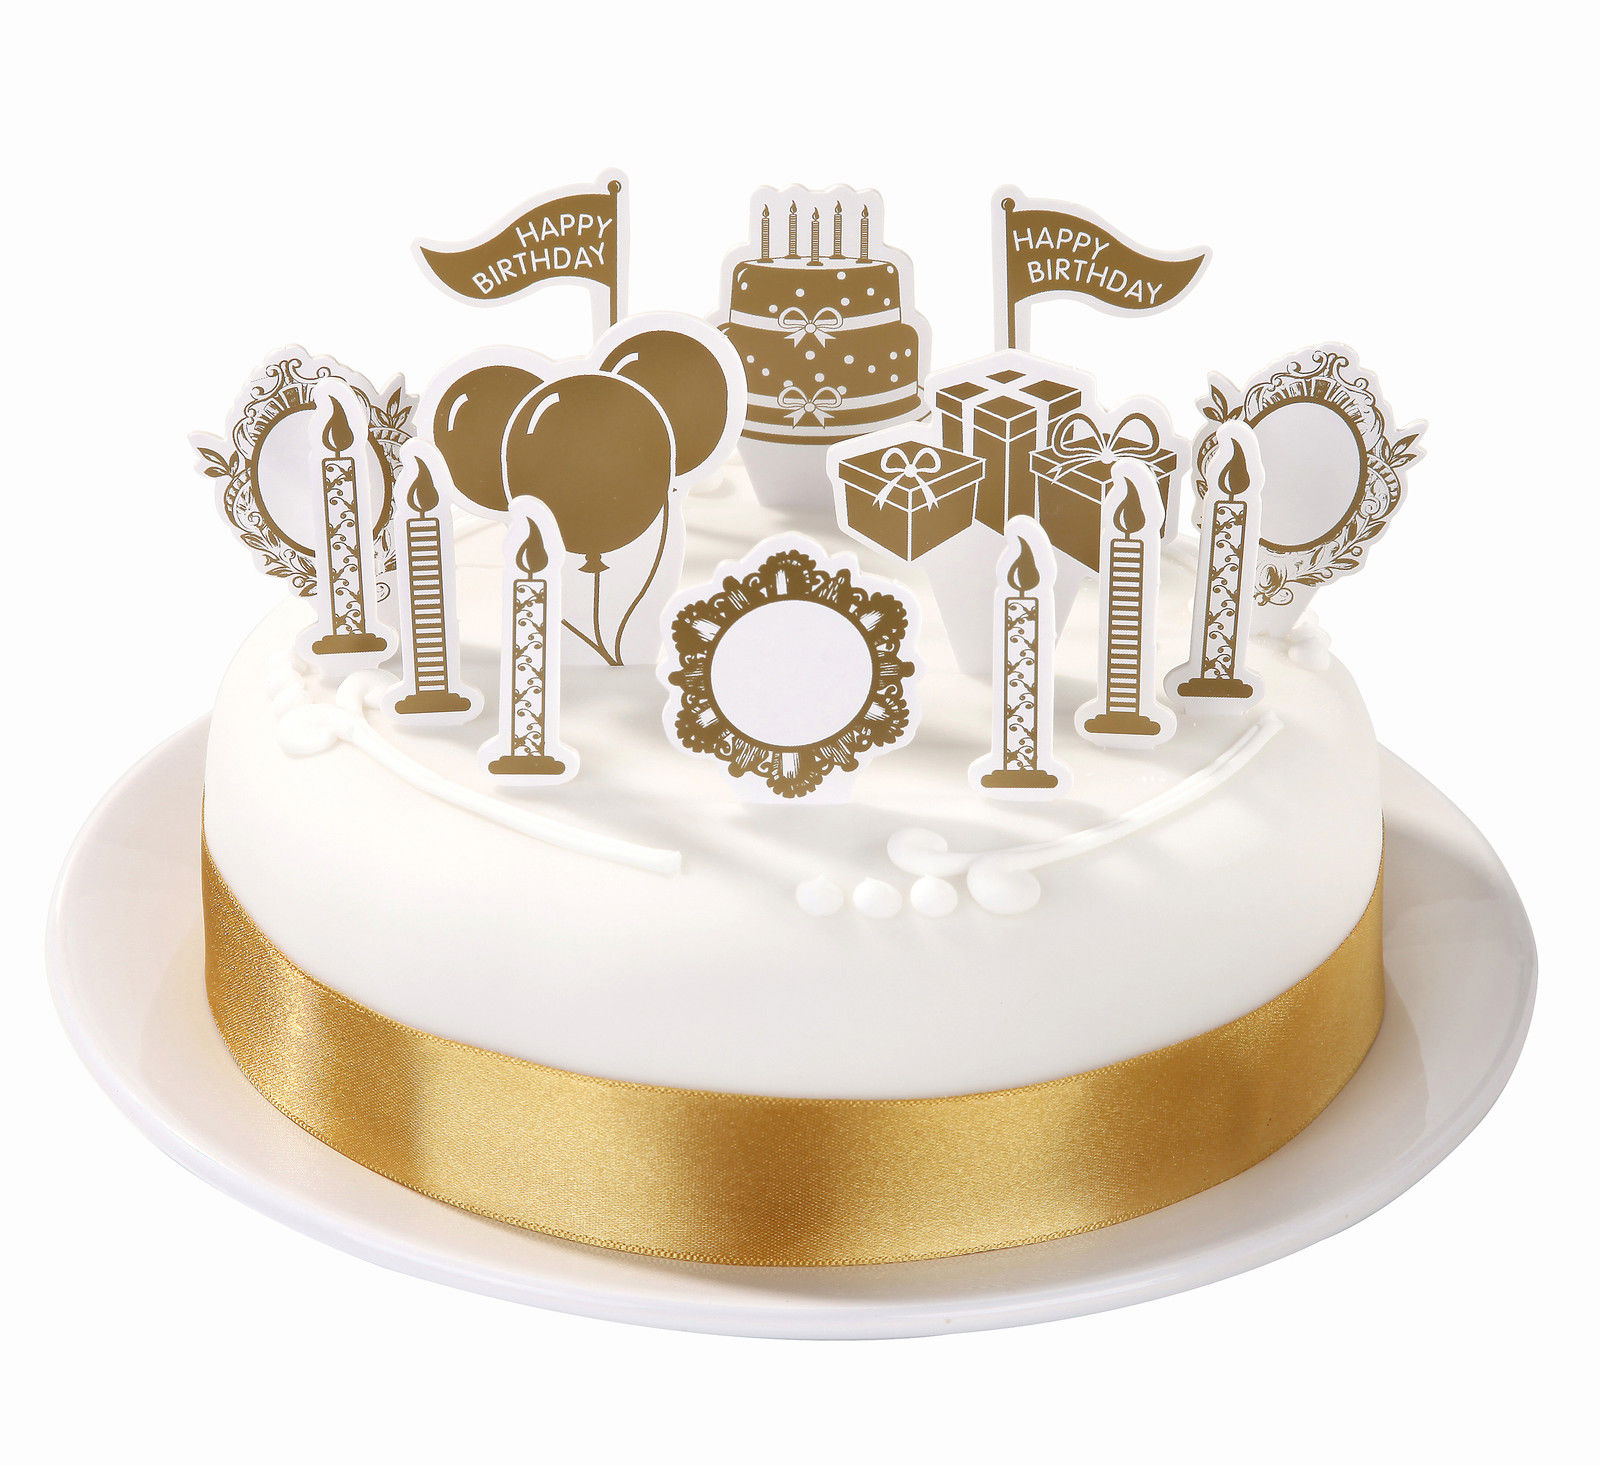 Golden Wedding Cake cucpake topper Decorations Birthday Gold cake ...